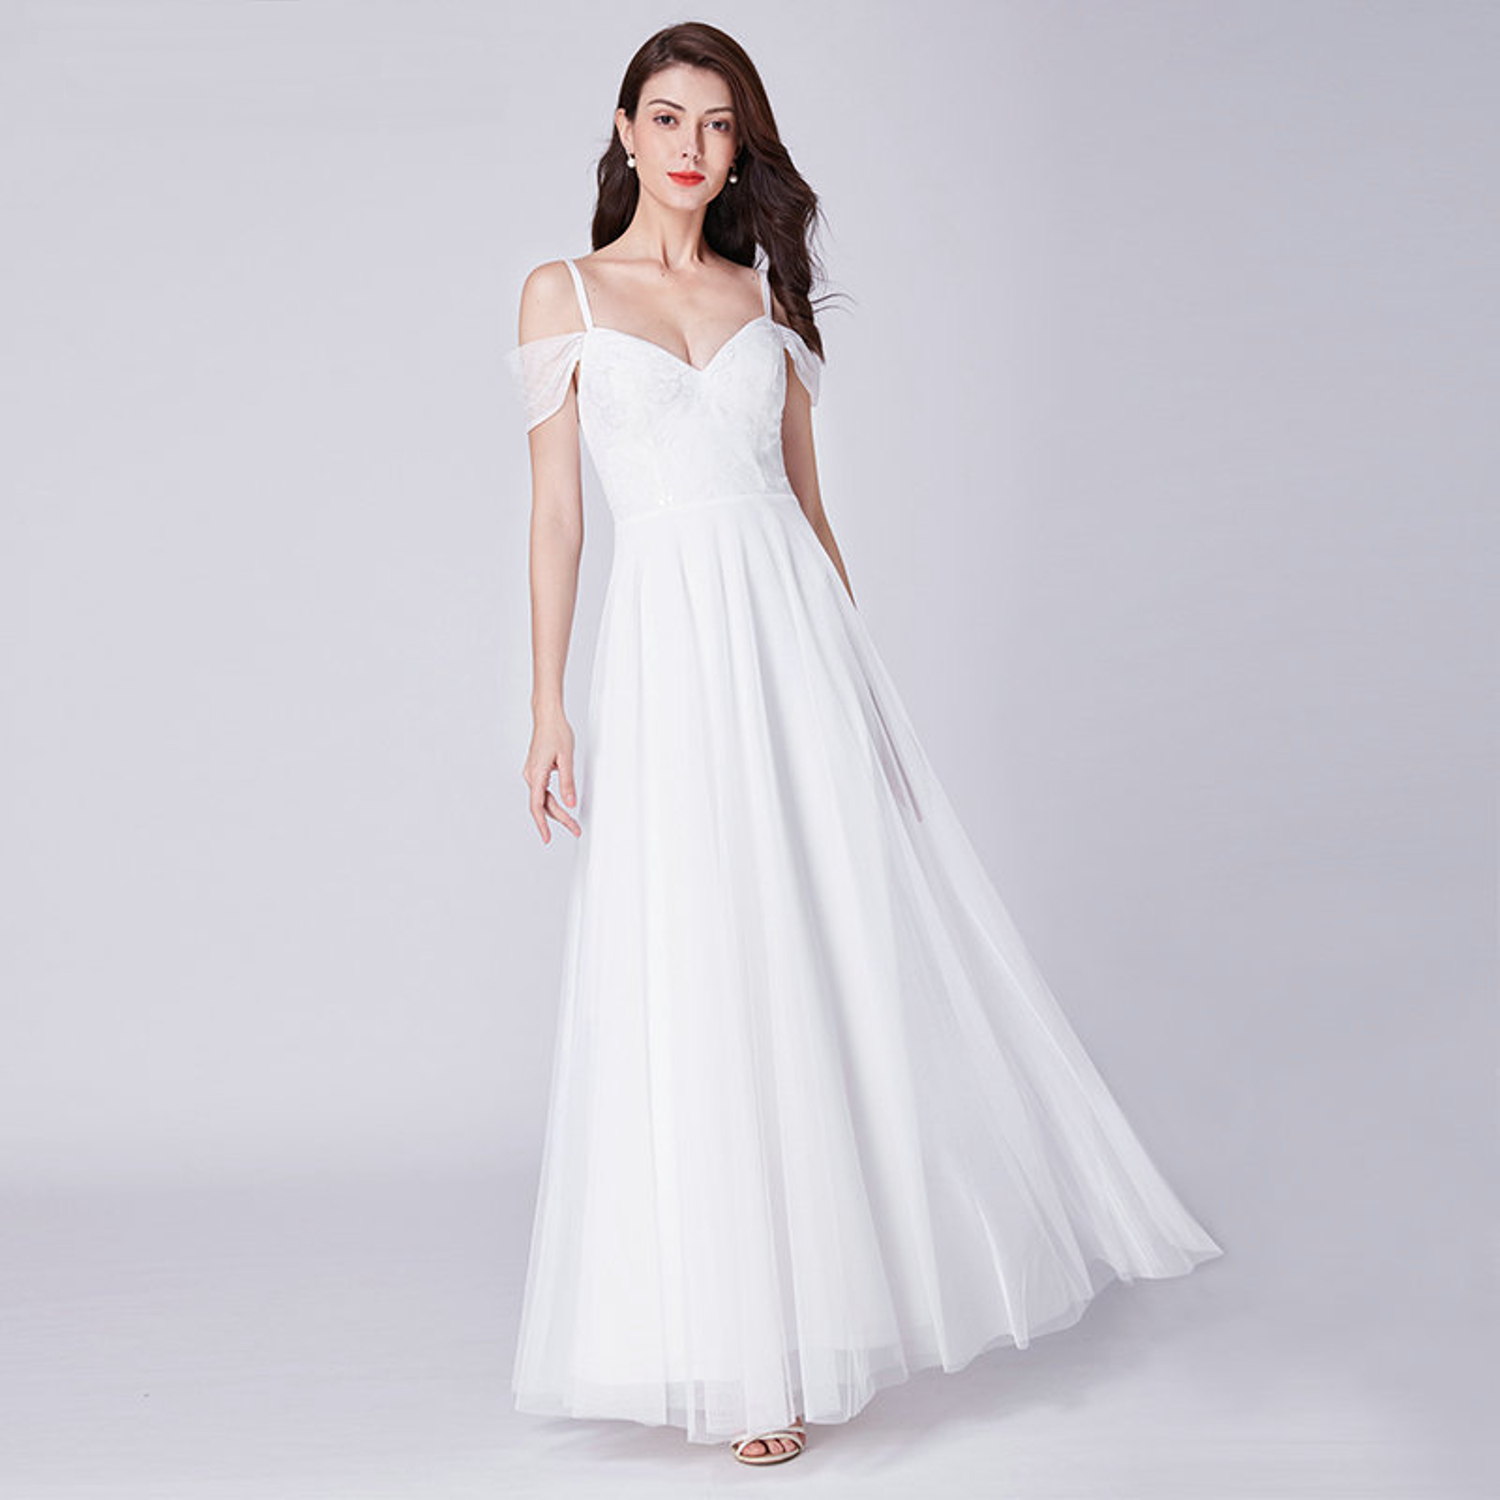 How To Look Stylish And Beautiful In Casual Wedding Dresses The